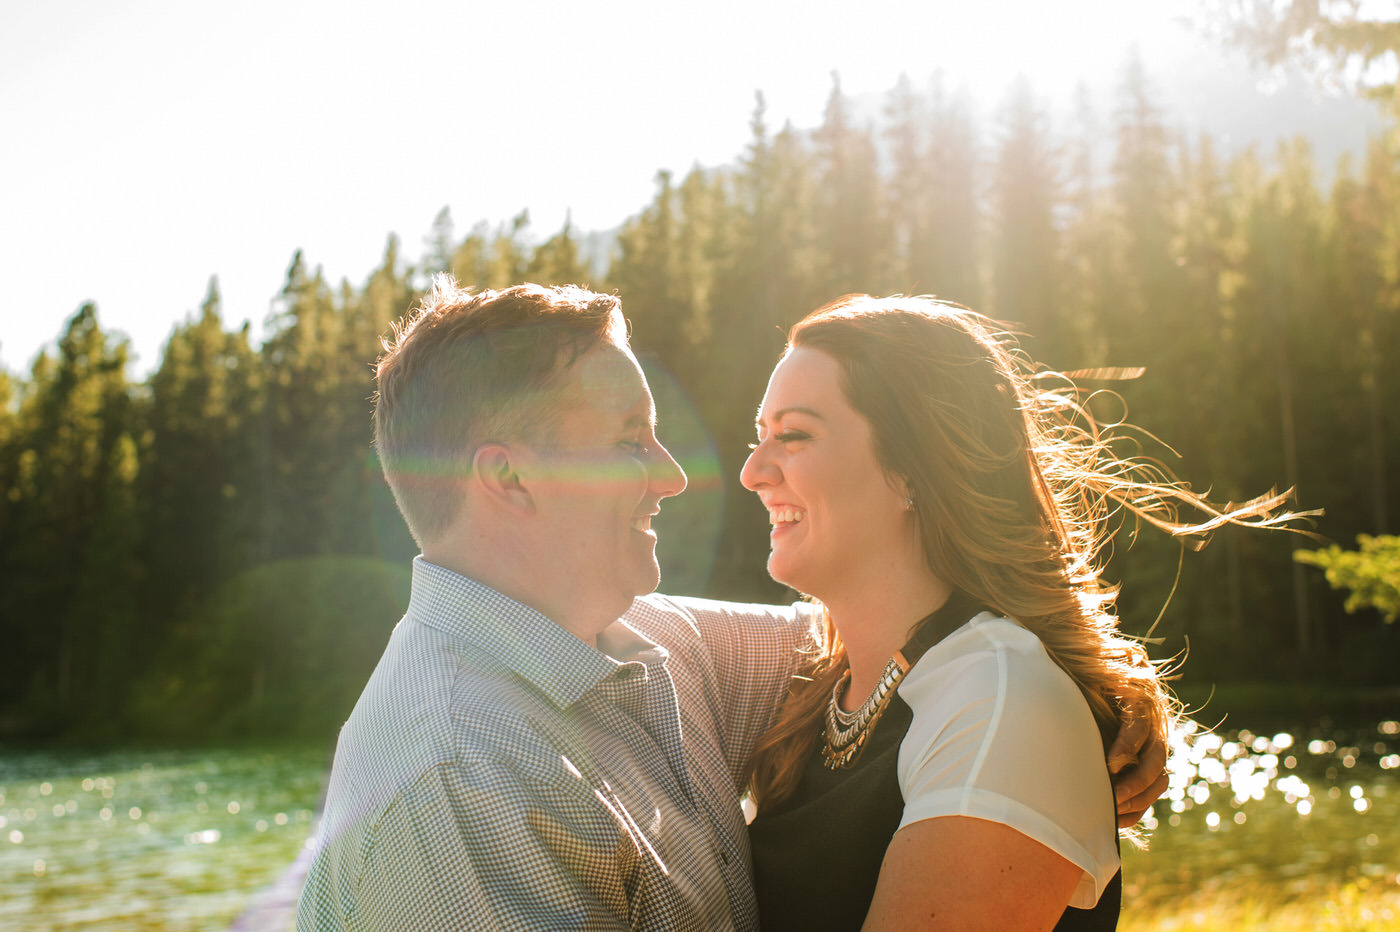 Banff_canmore_engagement_elopement_photos_07.jpg